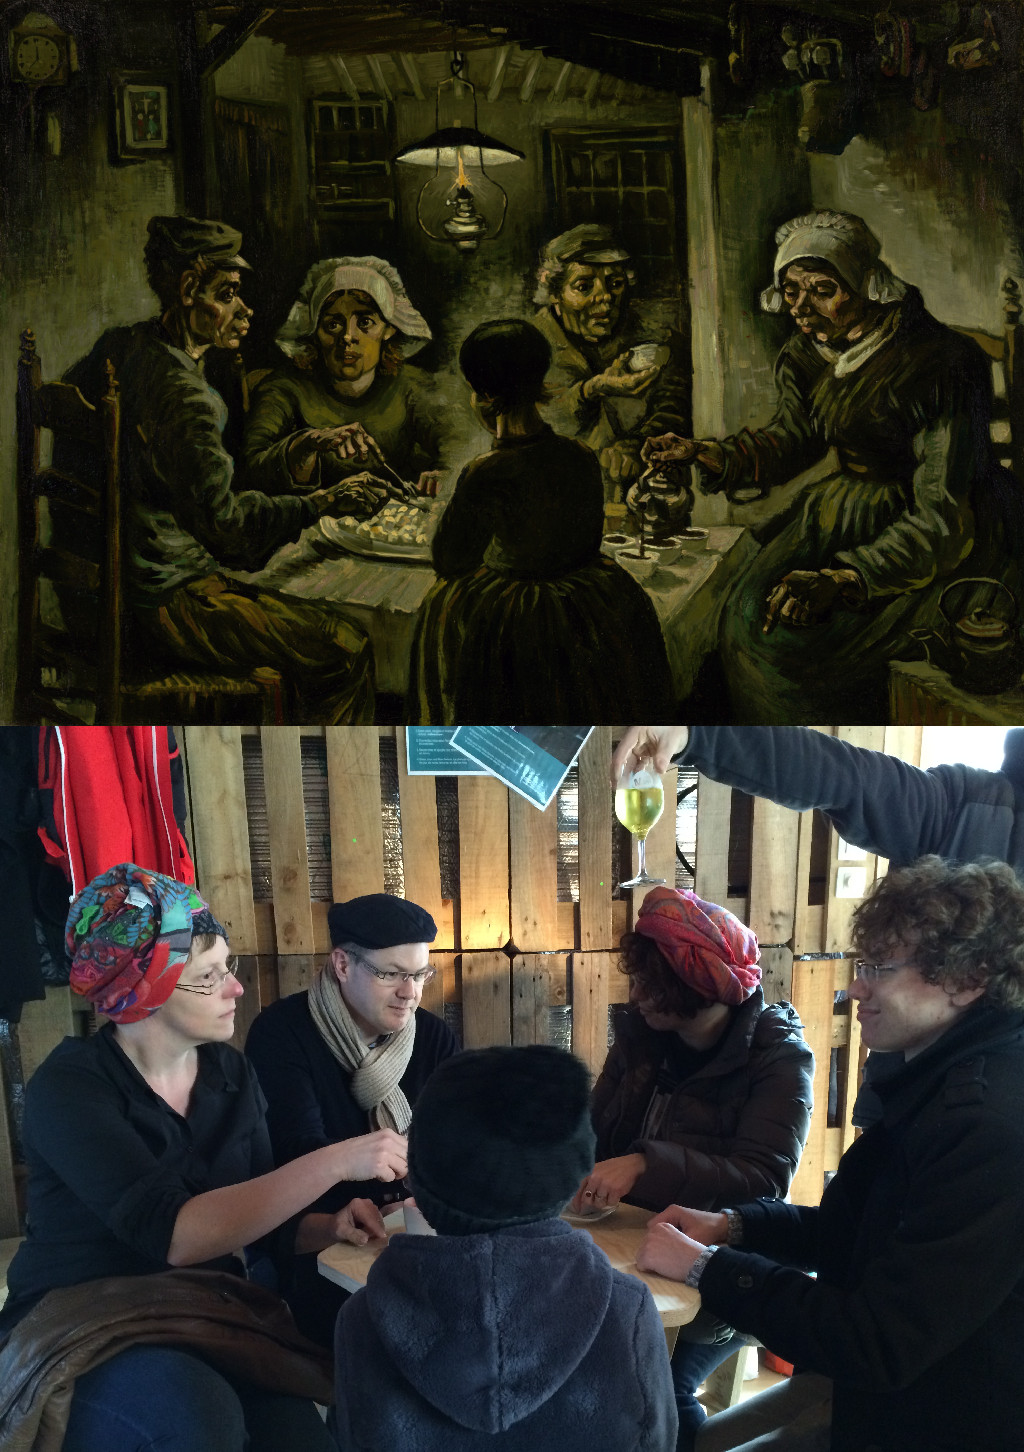 The Potato Eaters, Vincent van Gogh (1853-1890) vanGo'd by A modern family @Mons2015 Family Day